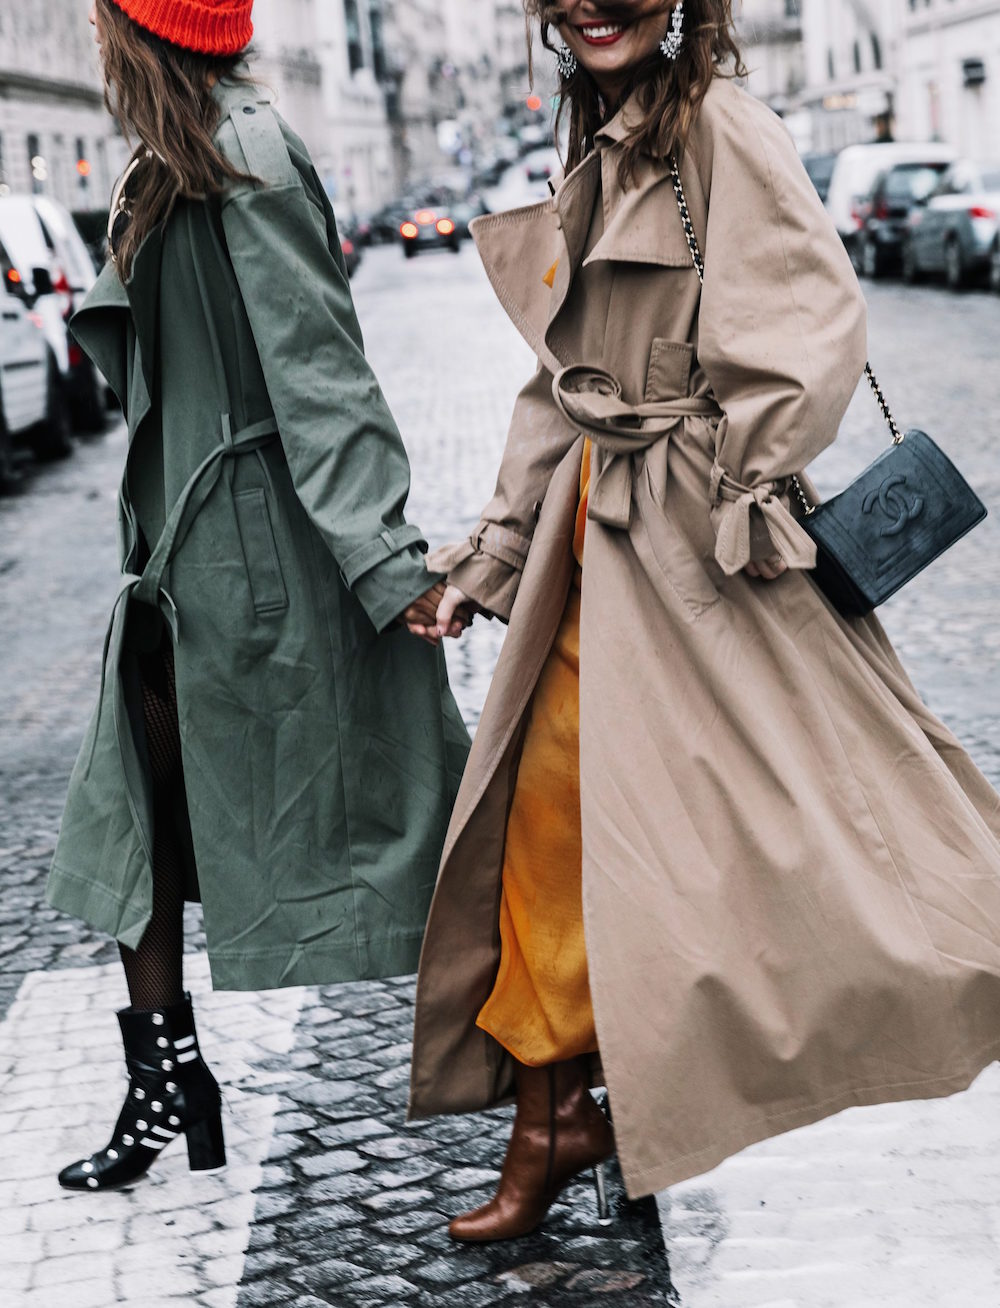 PFW-Paris_Fashion_Week_Fall_17-Street_Style-Collage_Vintage-Trench_Coat-Sincerely_Jules-Vetements_Boots-JW_Pierce_Bag-Fishnet_Tights-77-1800x2355